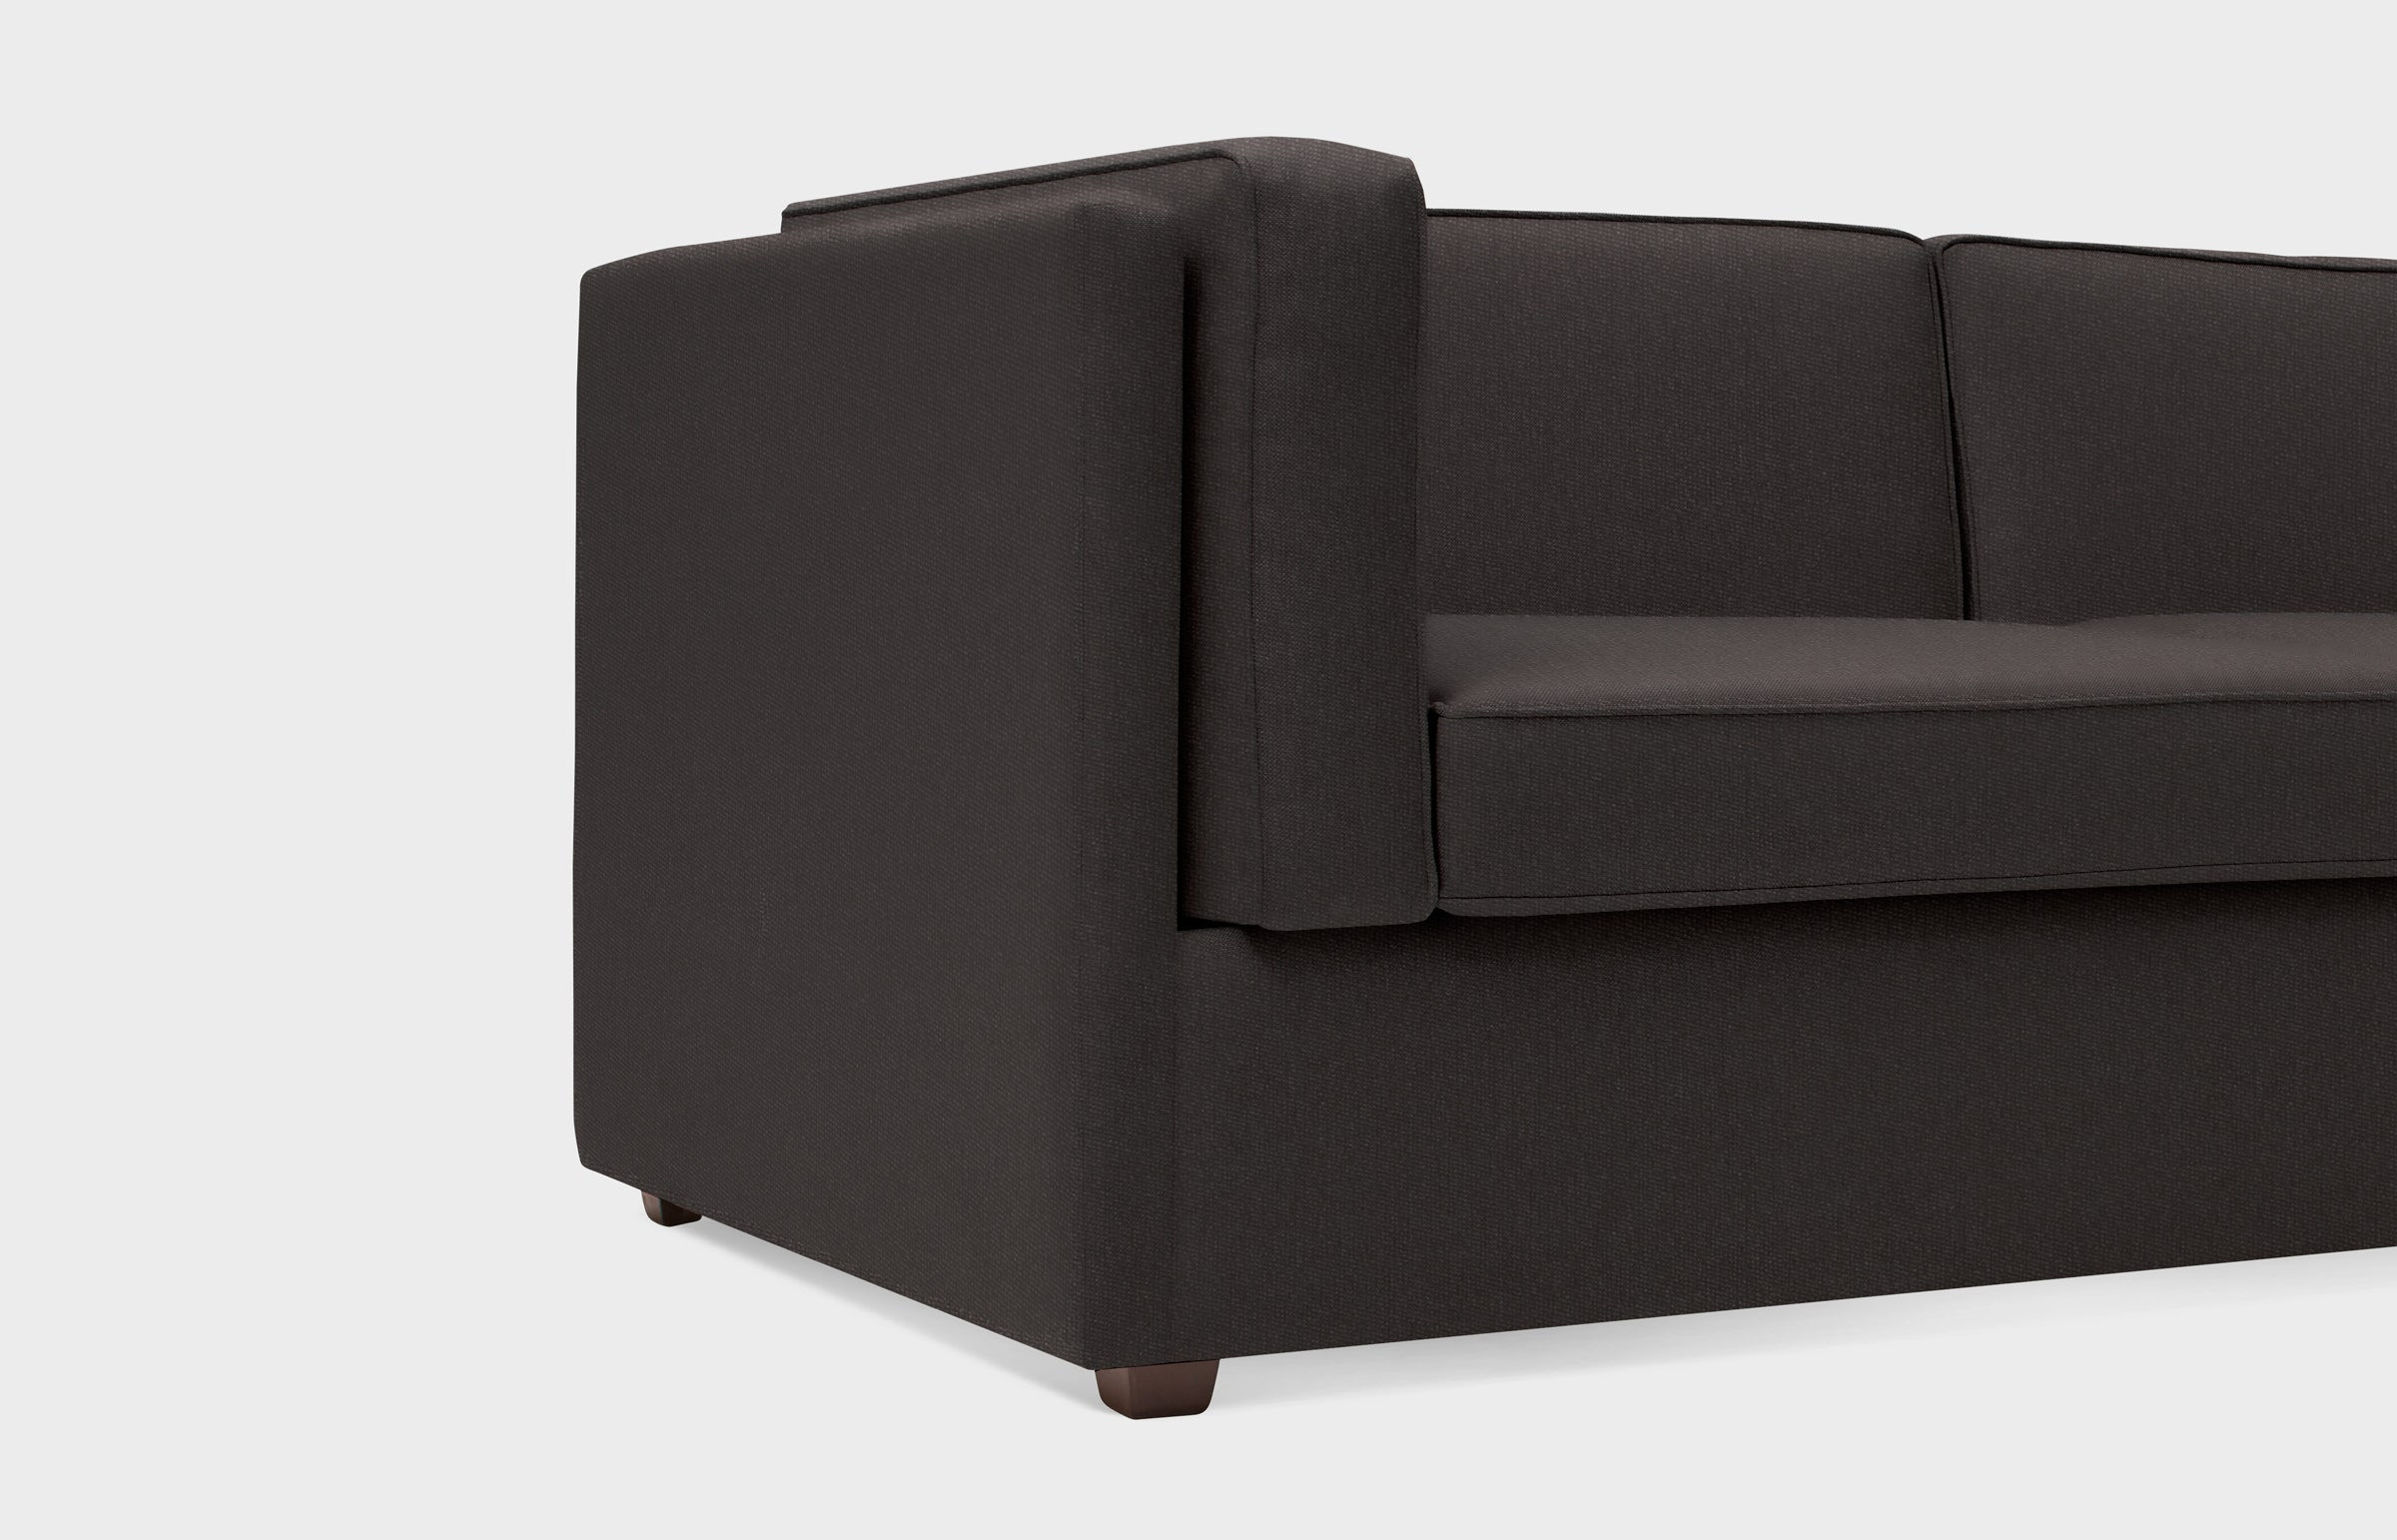 Swell Blu Dot Bank Sleeper Sofa Review Inzonedesignstudio Interior Chair Design Inzonedesignstudiocom